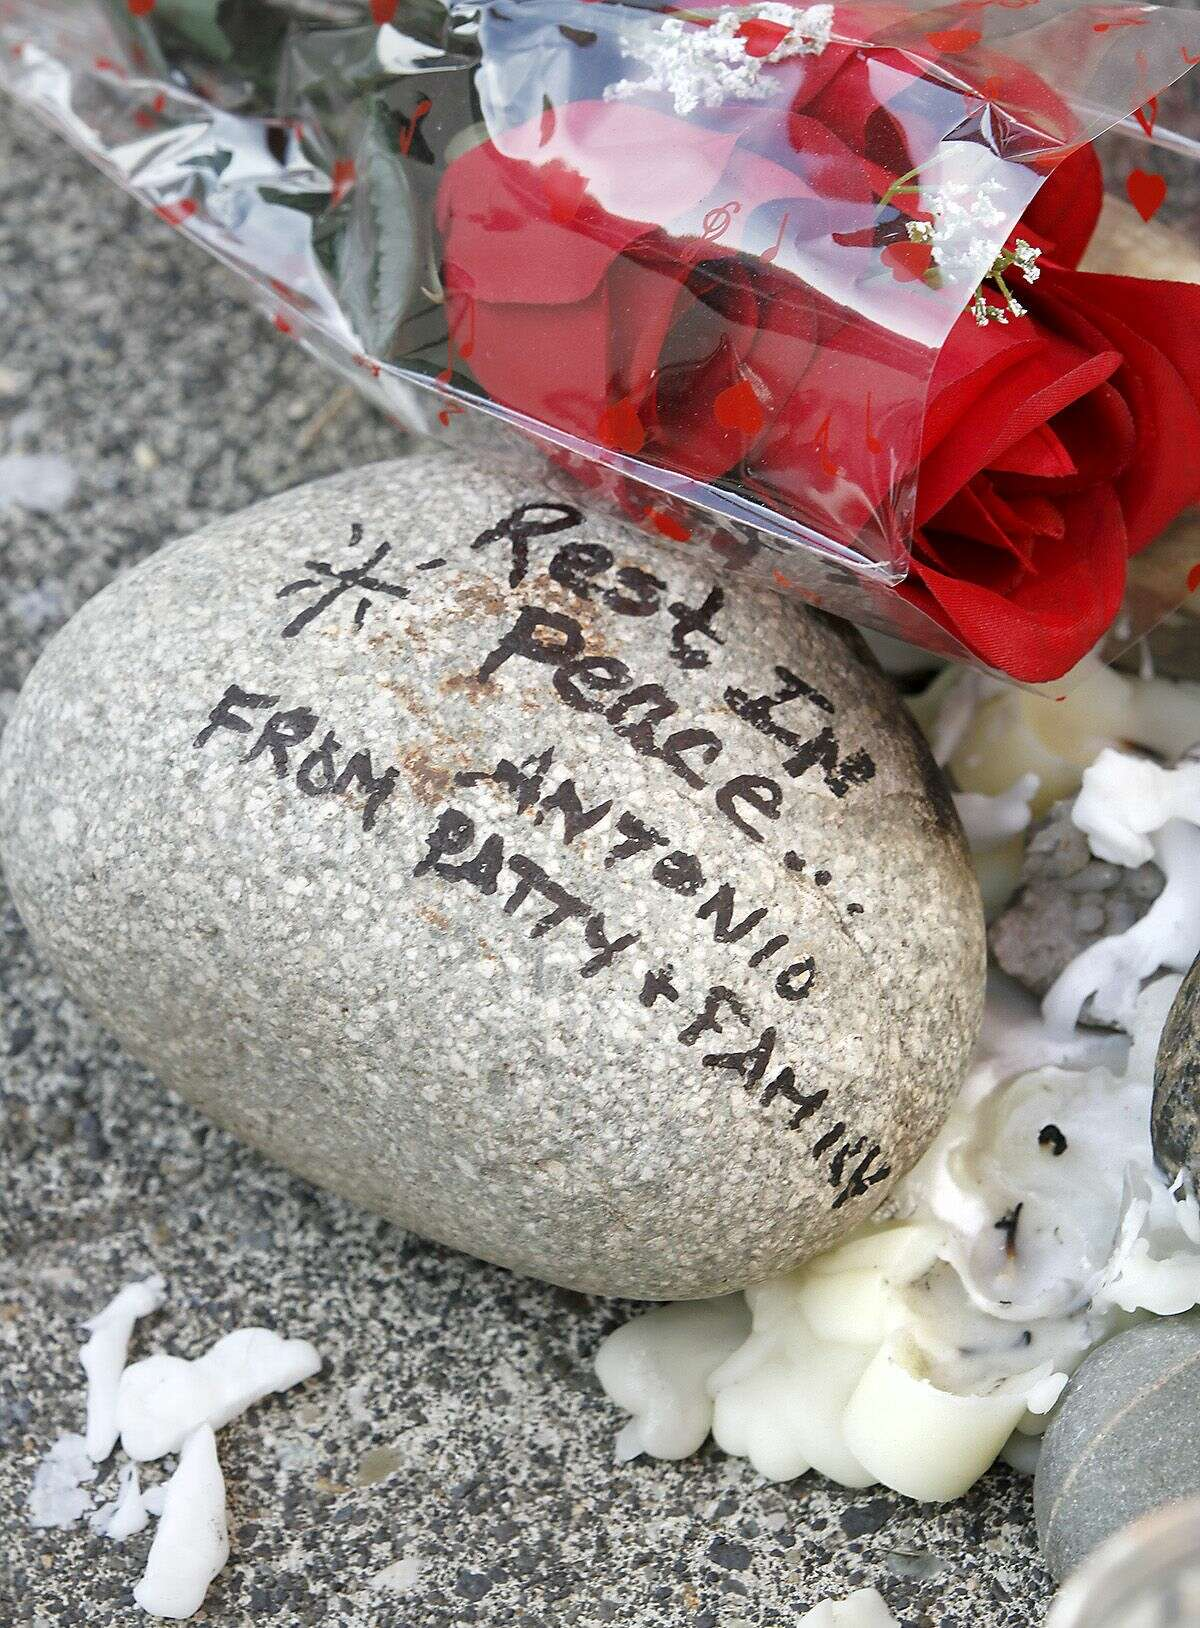 Melted candle wax, a rock and roses are part of an impromptu memorial for Antonio Zambrano-Montes set up on the sidewalk Thursday Feb. 12, 2015 outside of Vinny's Bakery & Cafe in Pasco Wash. It's at the site where the Pasco man was shot and killed by police officers on February 10, 2015. Four people have been shot and killed by police in recent months in this agricultural city of 68,000 in southeastern Washington, and the most recent death of an orchard worker accused of throwing rocks at officers has sparked protests after witnesses said he was running away. (AP Photo/The Tri-City, Herald, Bob Brawdy)